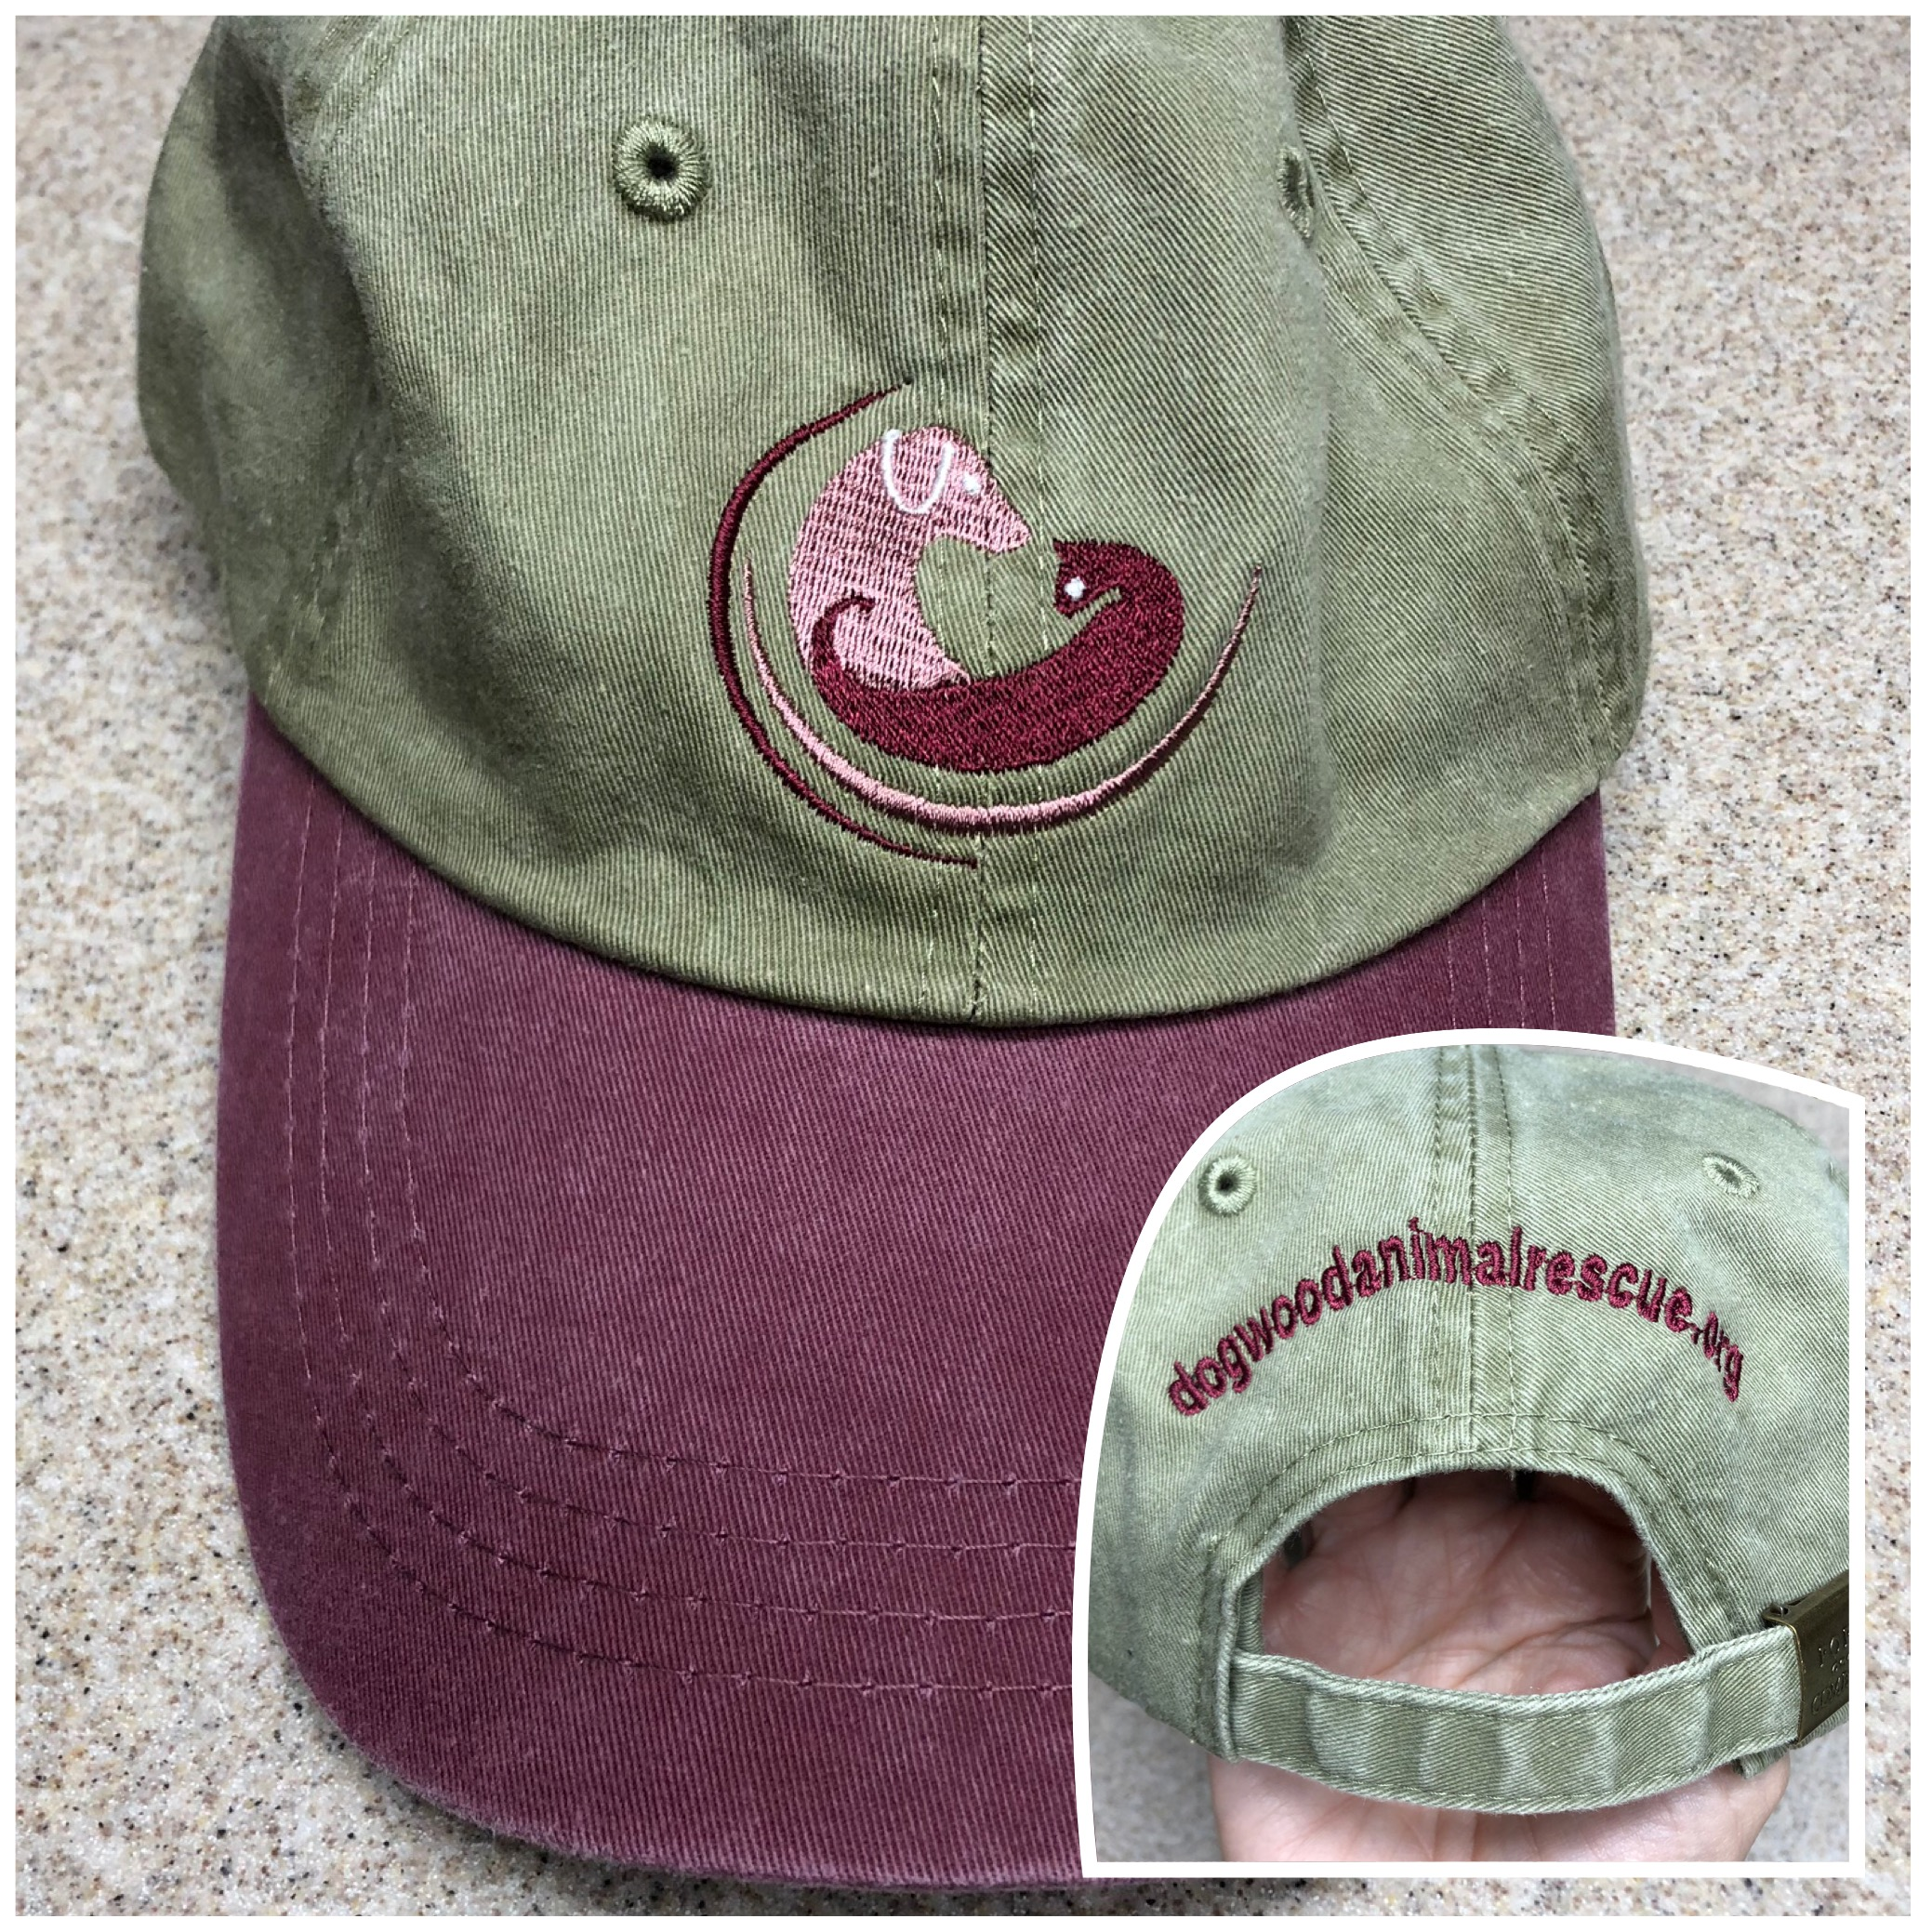 Dogwood Animal Rescue Baseball Hat - Maroon-KhakiDogwood Animal ... 6063c2bdff9